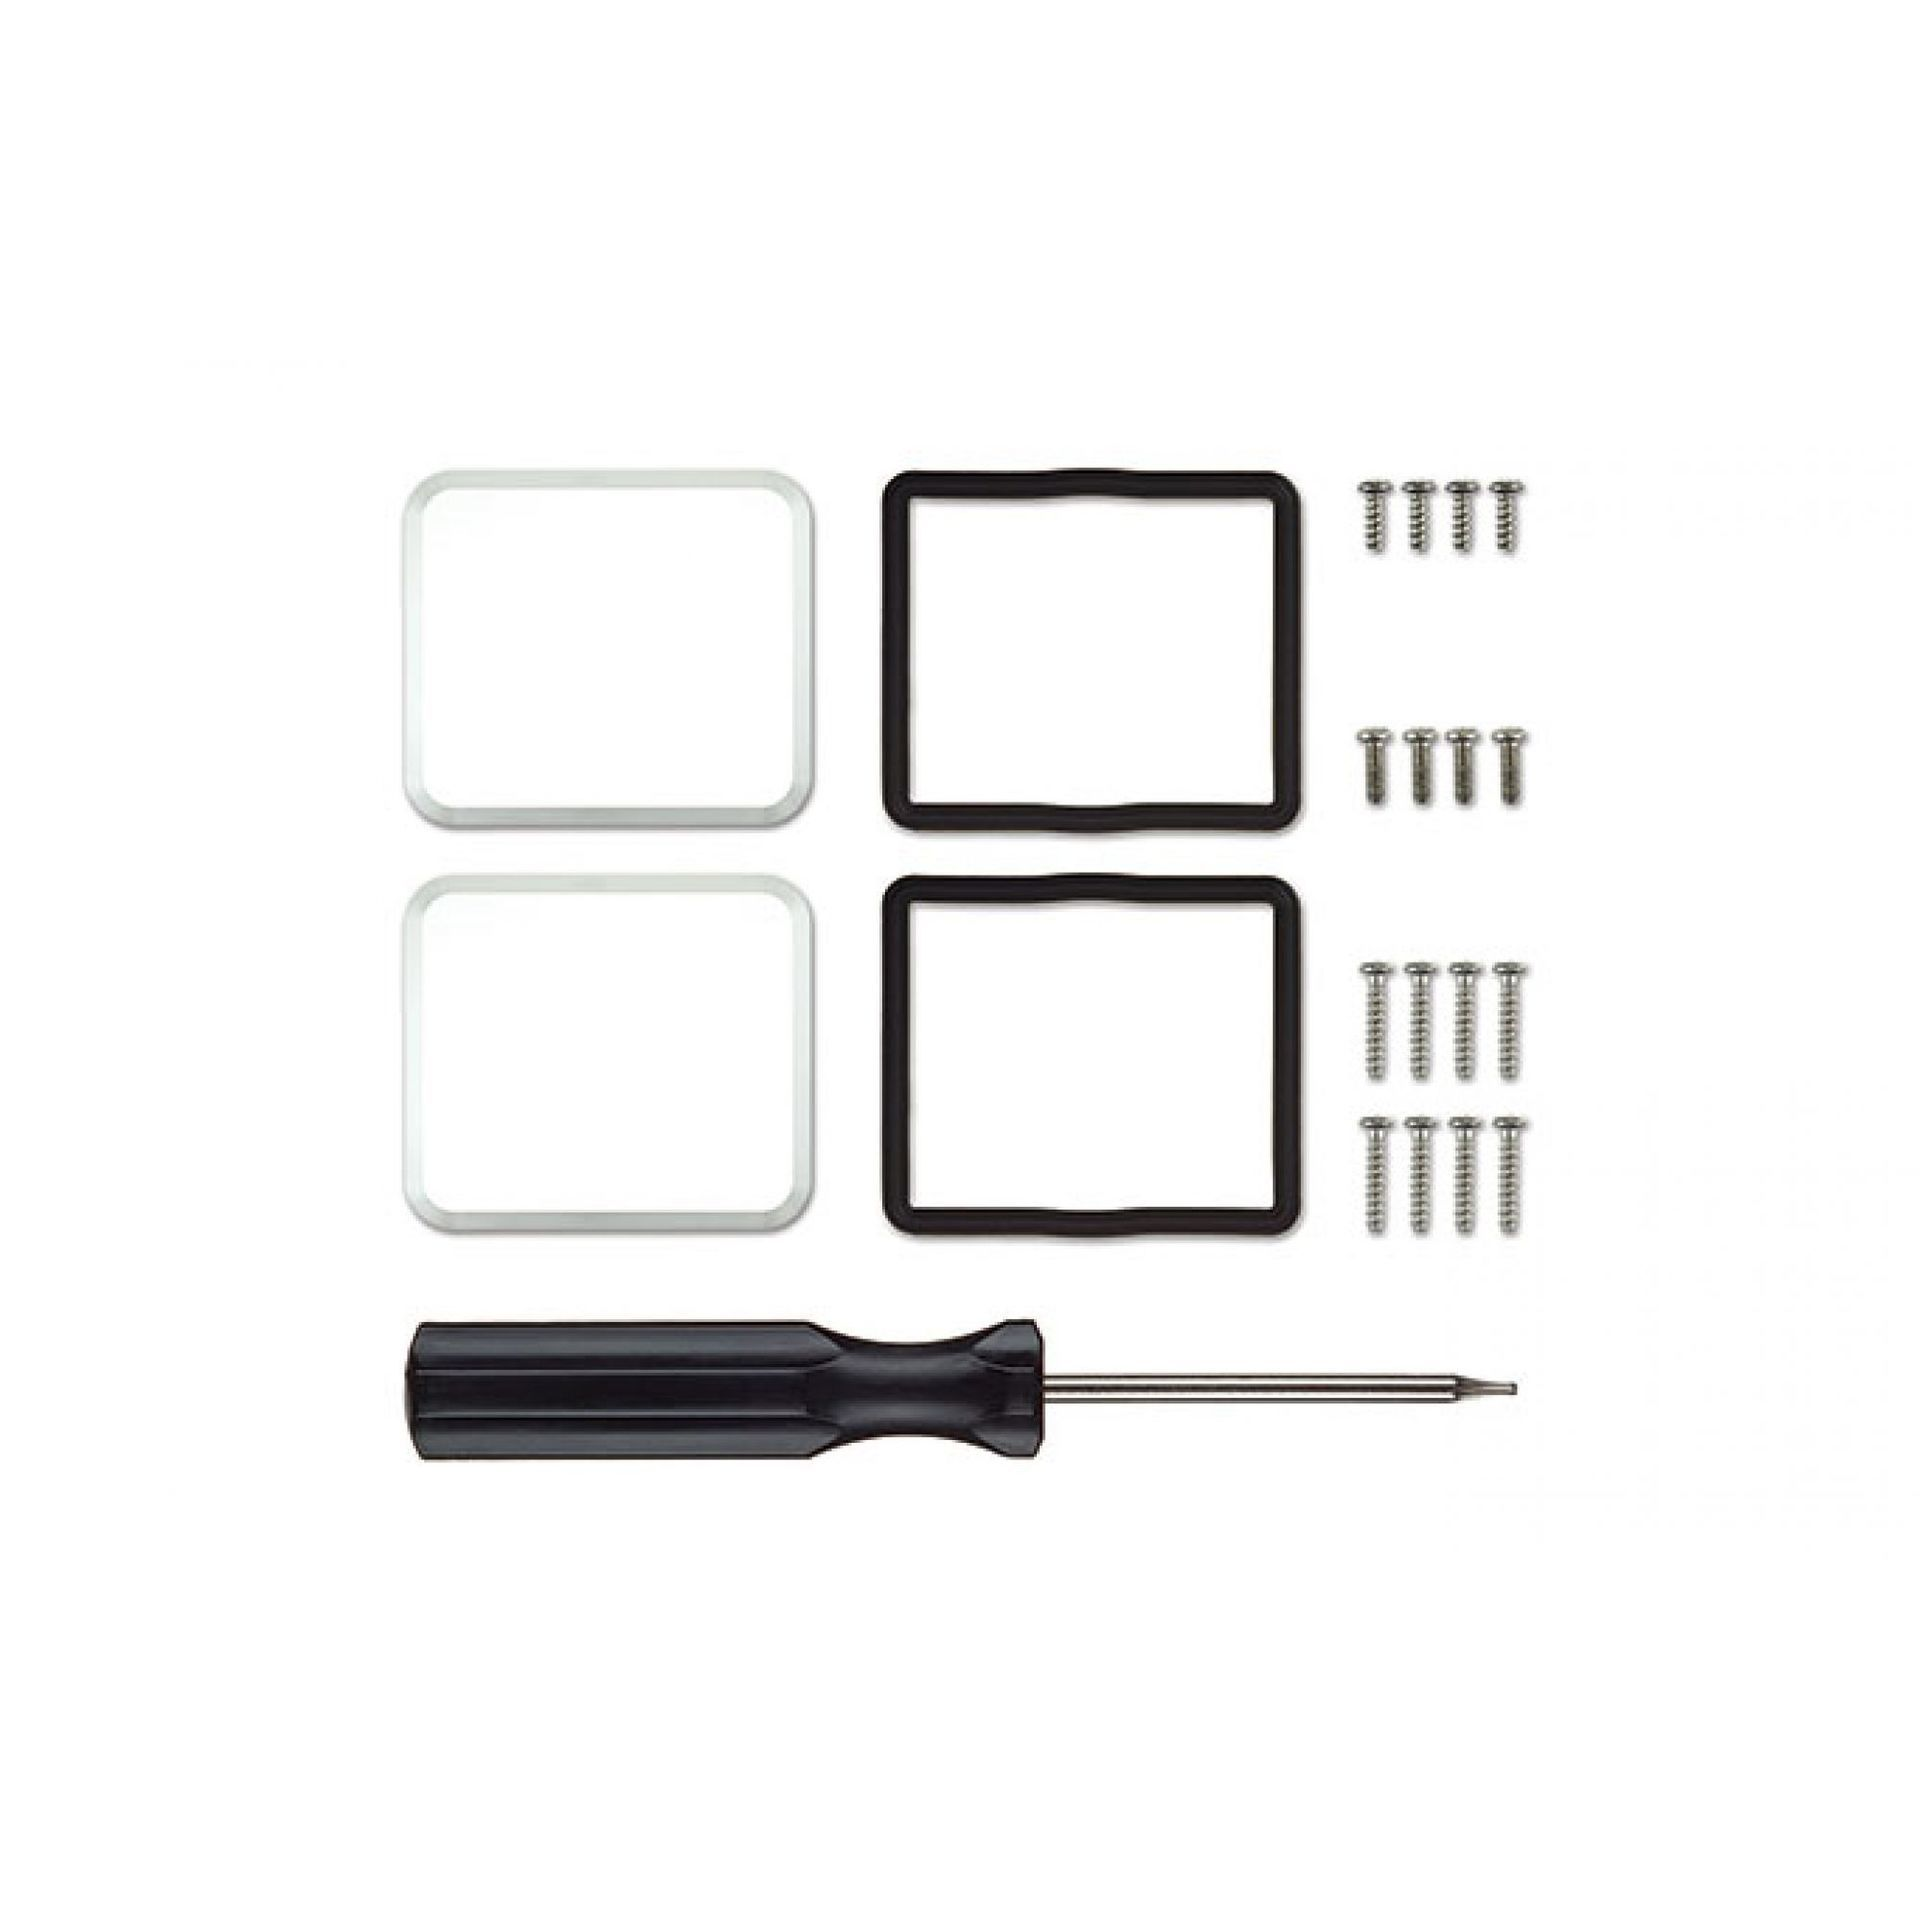 SOCZEWKI GOPRO GP LENS REPLACEMENT KIT FOR HERO 3